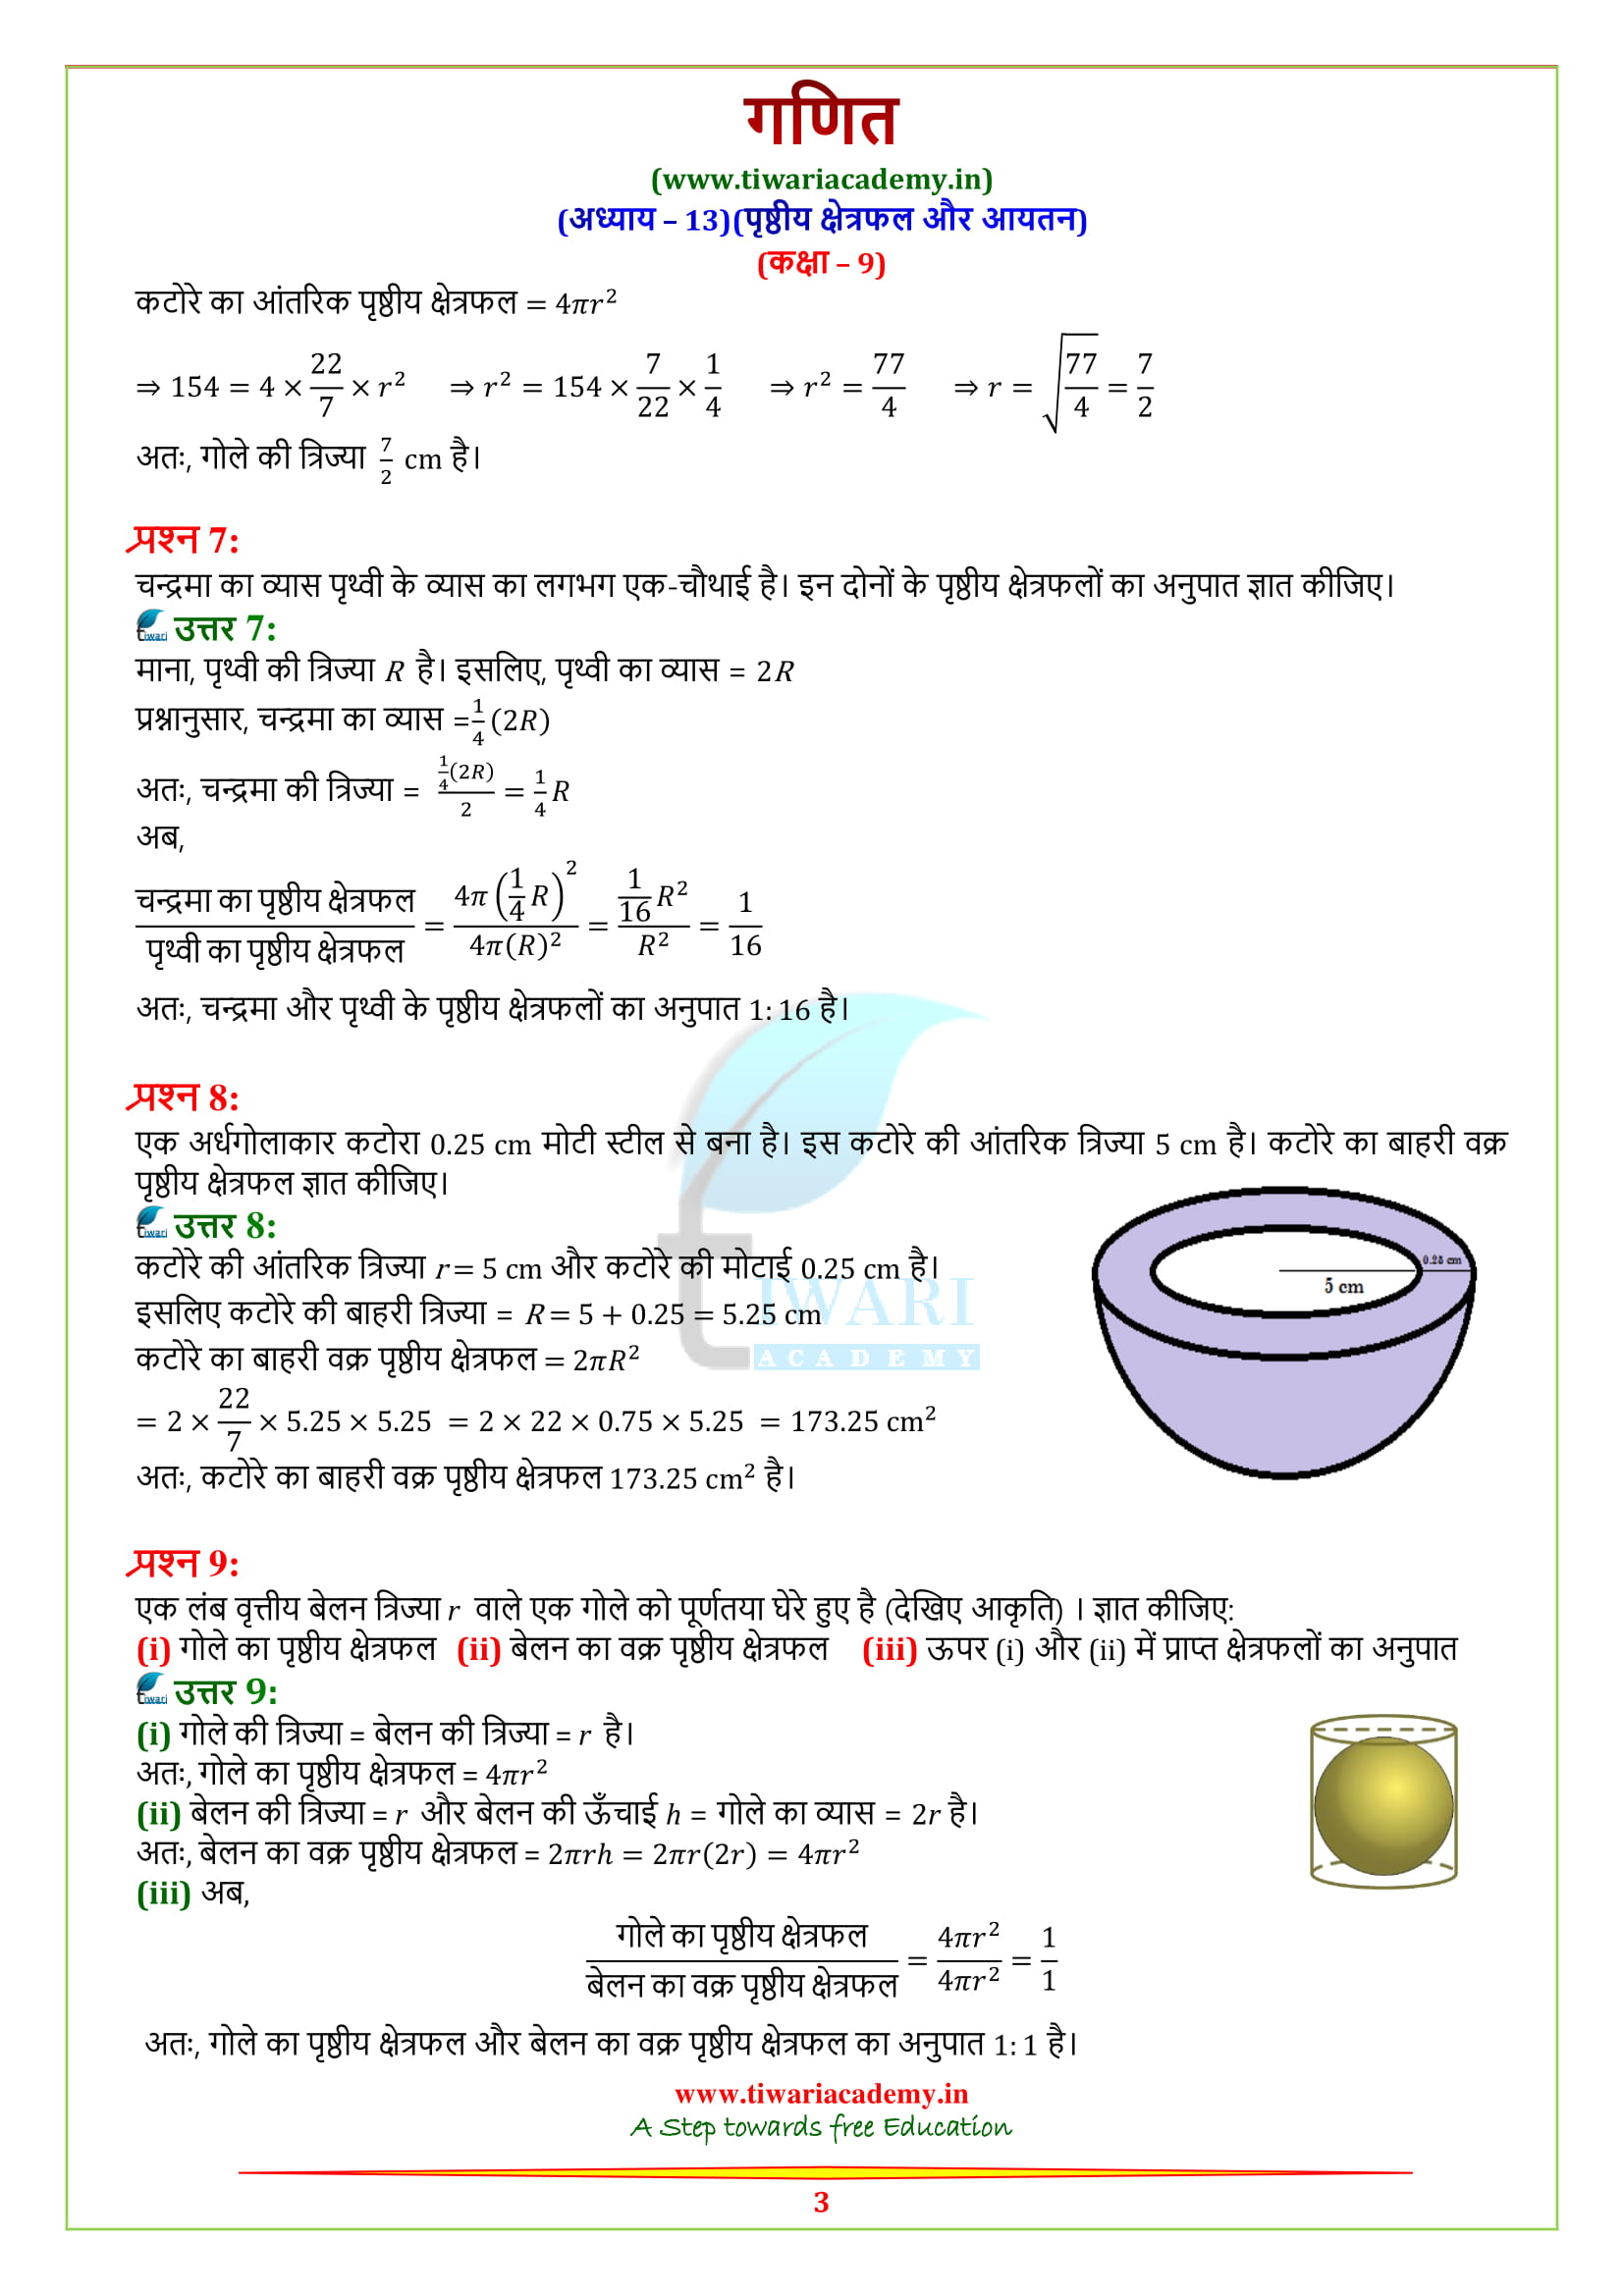 9 Maths exercise 13.4 all question answers guide free